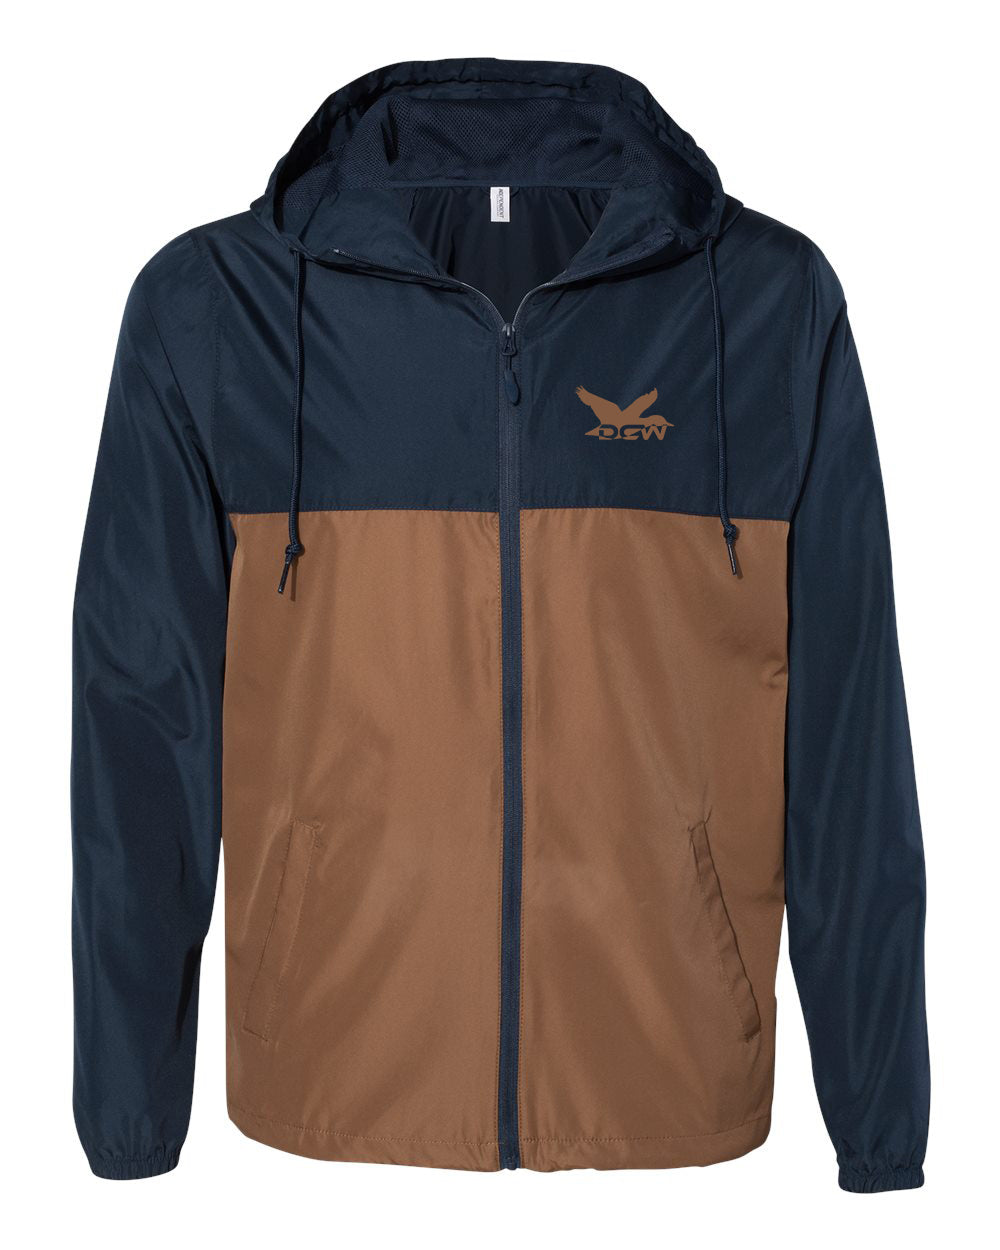 DCW Water-Resistant Windbreaker - Navy/Saddle